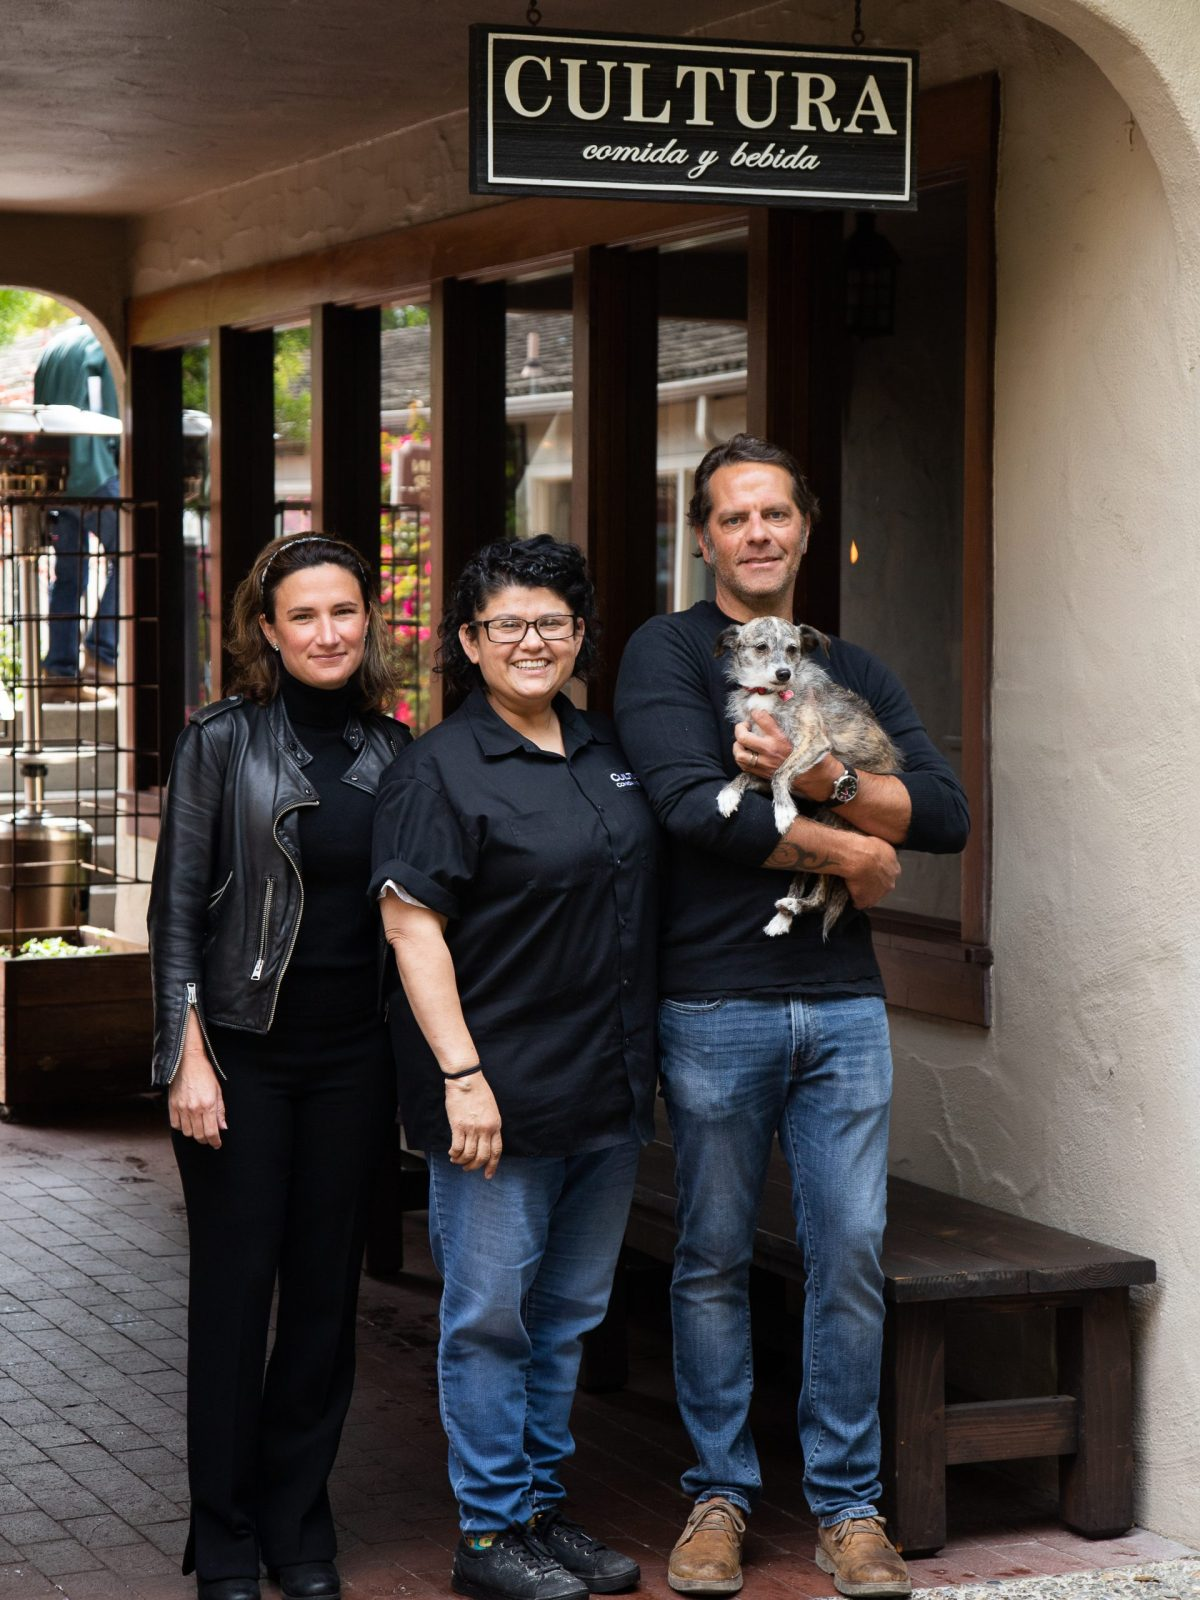 Managing partners, Sarah-Kabat Marcy and Michael Marcy with and Chef Michelle Estigoy, center, pose outside their restaurant Cultura Comida y Bebida in Carmel-By-The-Sea, on August 6, 2021. Photo by Carlos Rene Castro for CalMatters